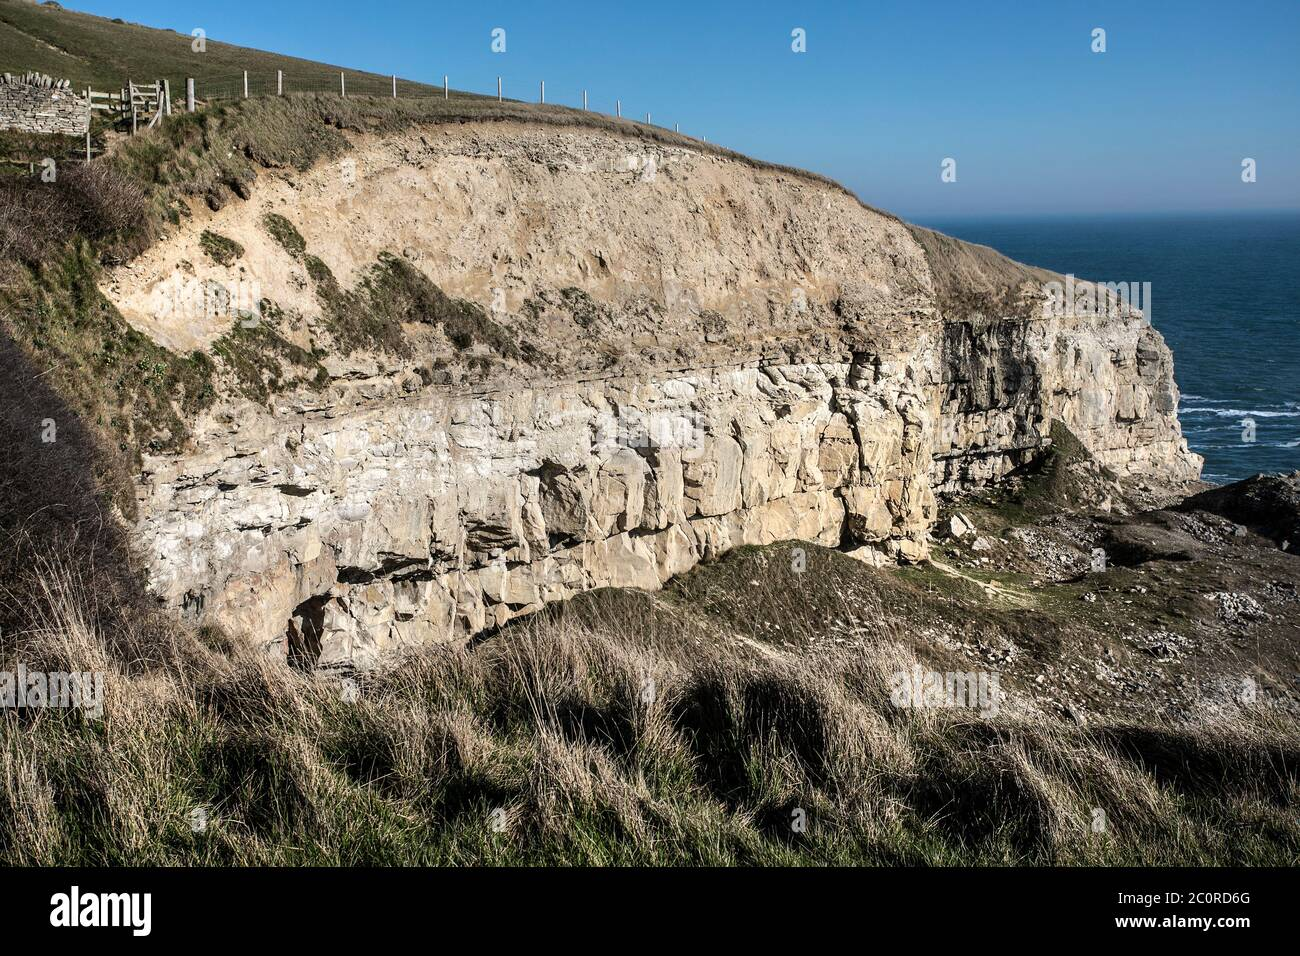 Crumbling cliffs in Dorset with rock strata on Jurassic Coast, with rough seas Stock Photo